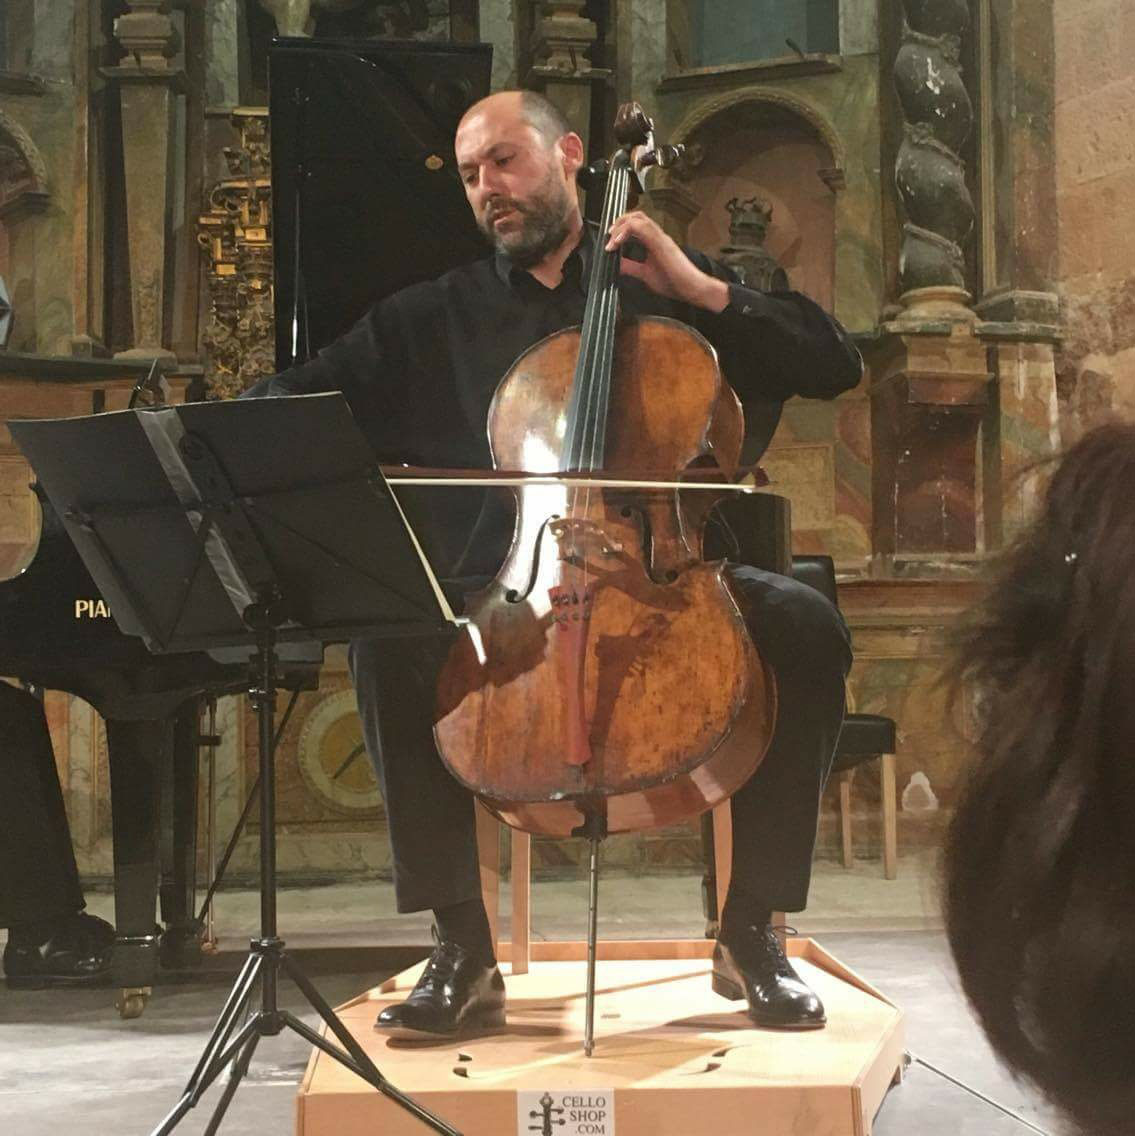 Alvaro Huertas Andrea Cello Sanctus Rosin